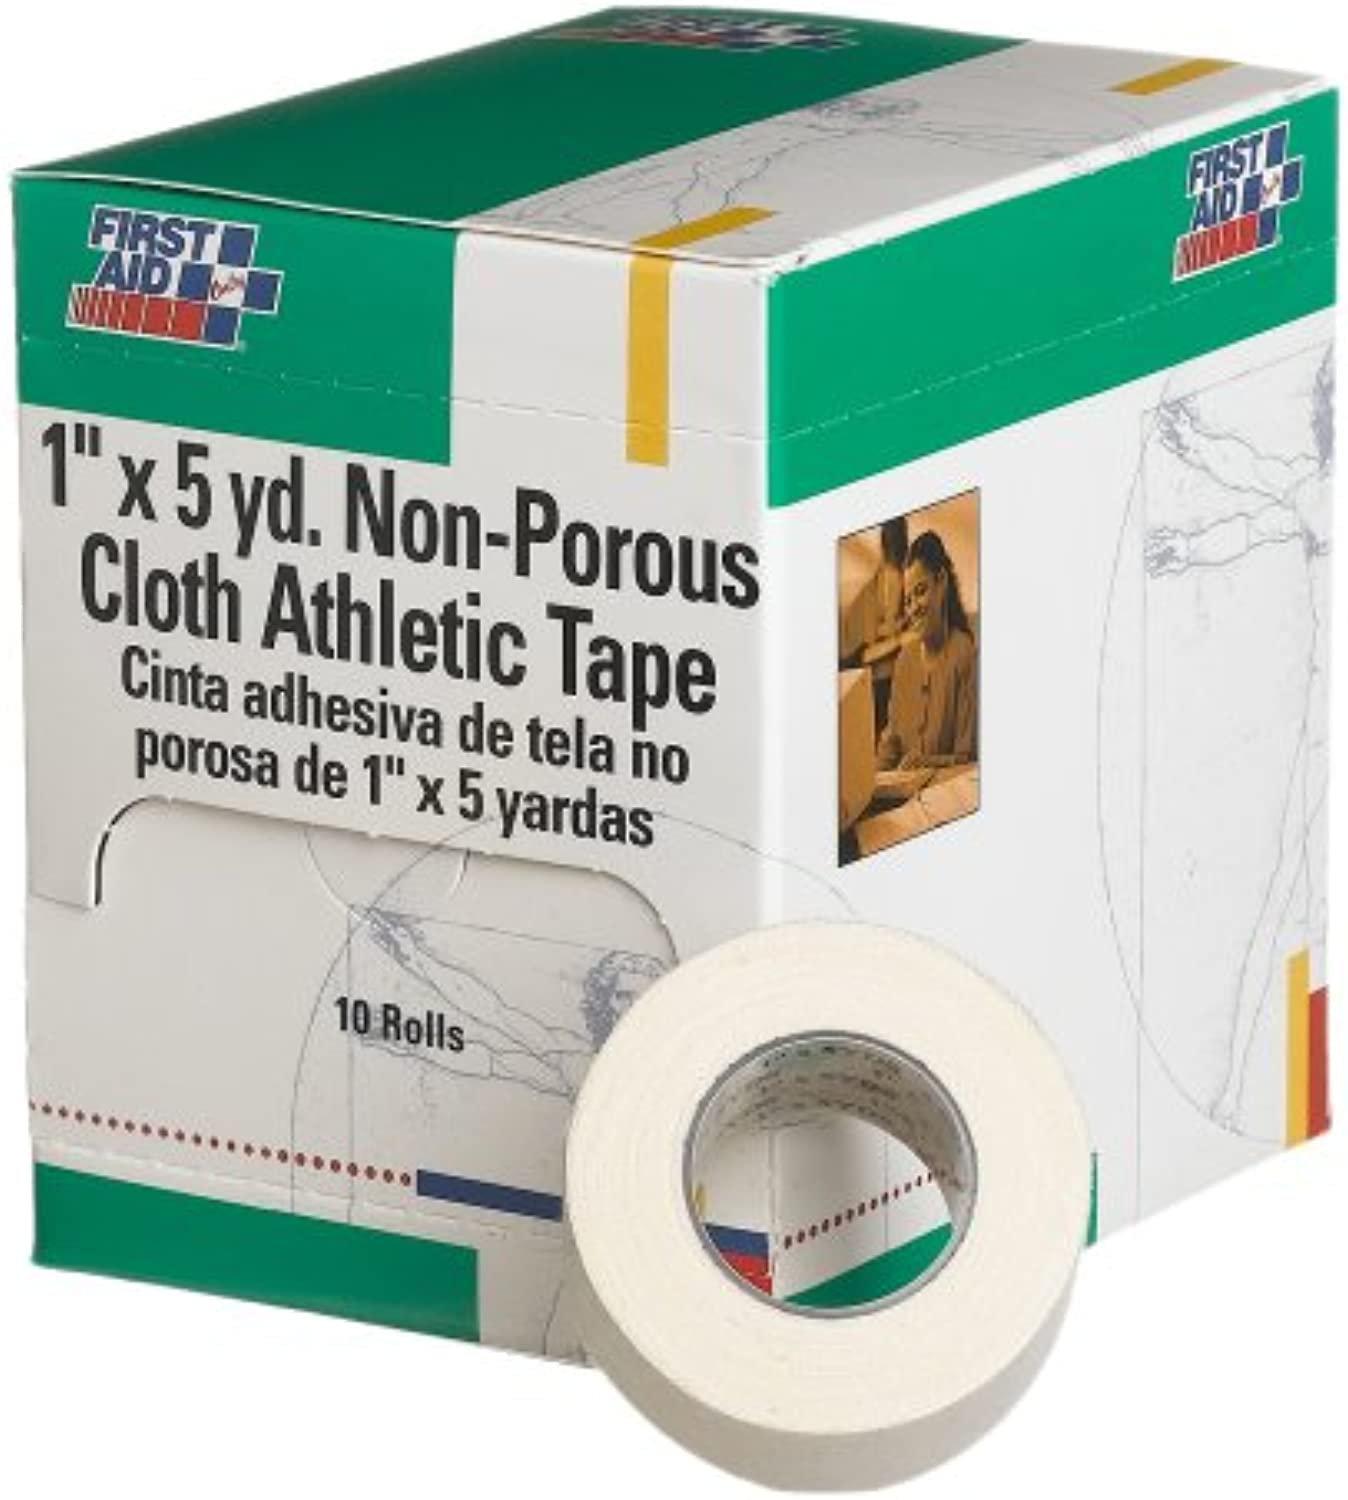 First Aid Only 2.5cm X 5 Yd. Nonpgoldus Cloth Athletic Tape Roll, 10Count Box